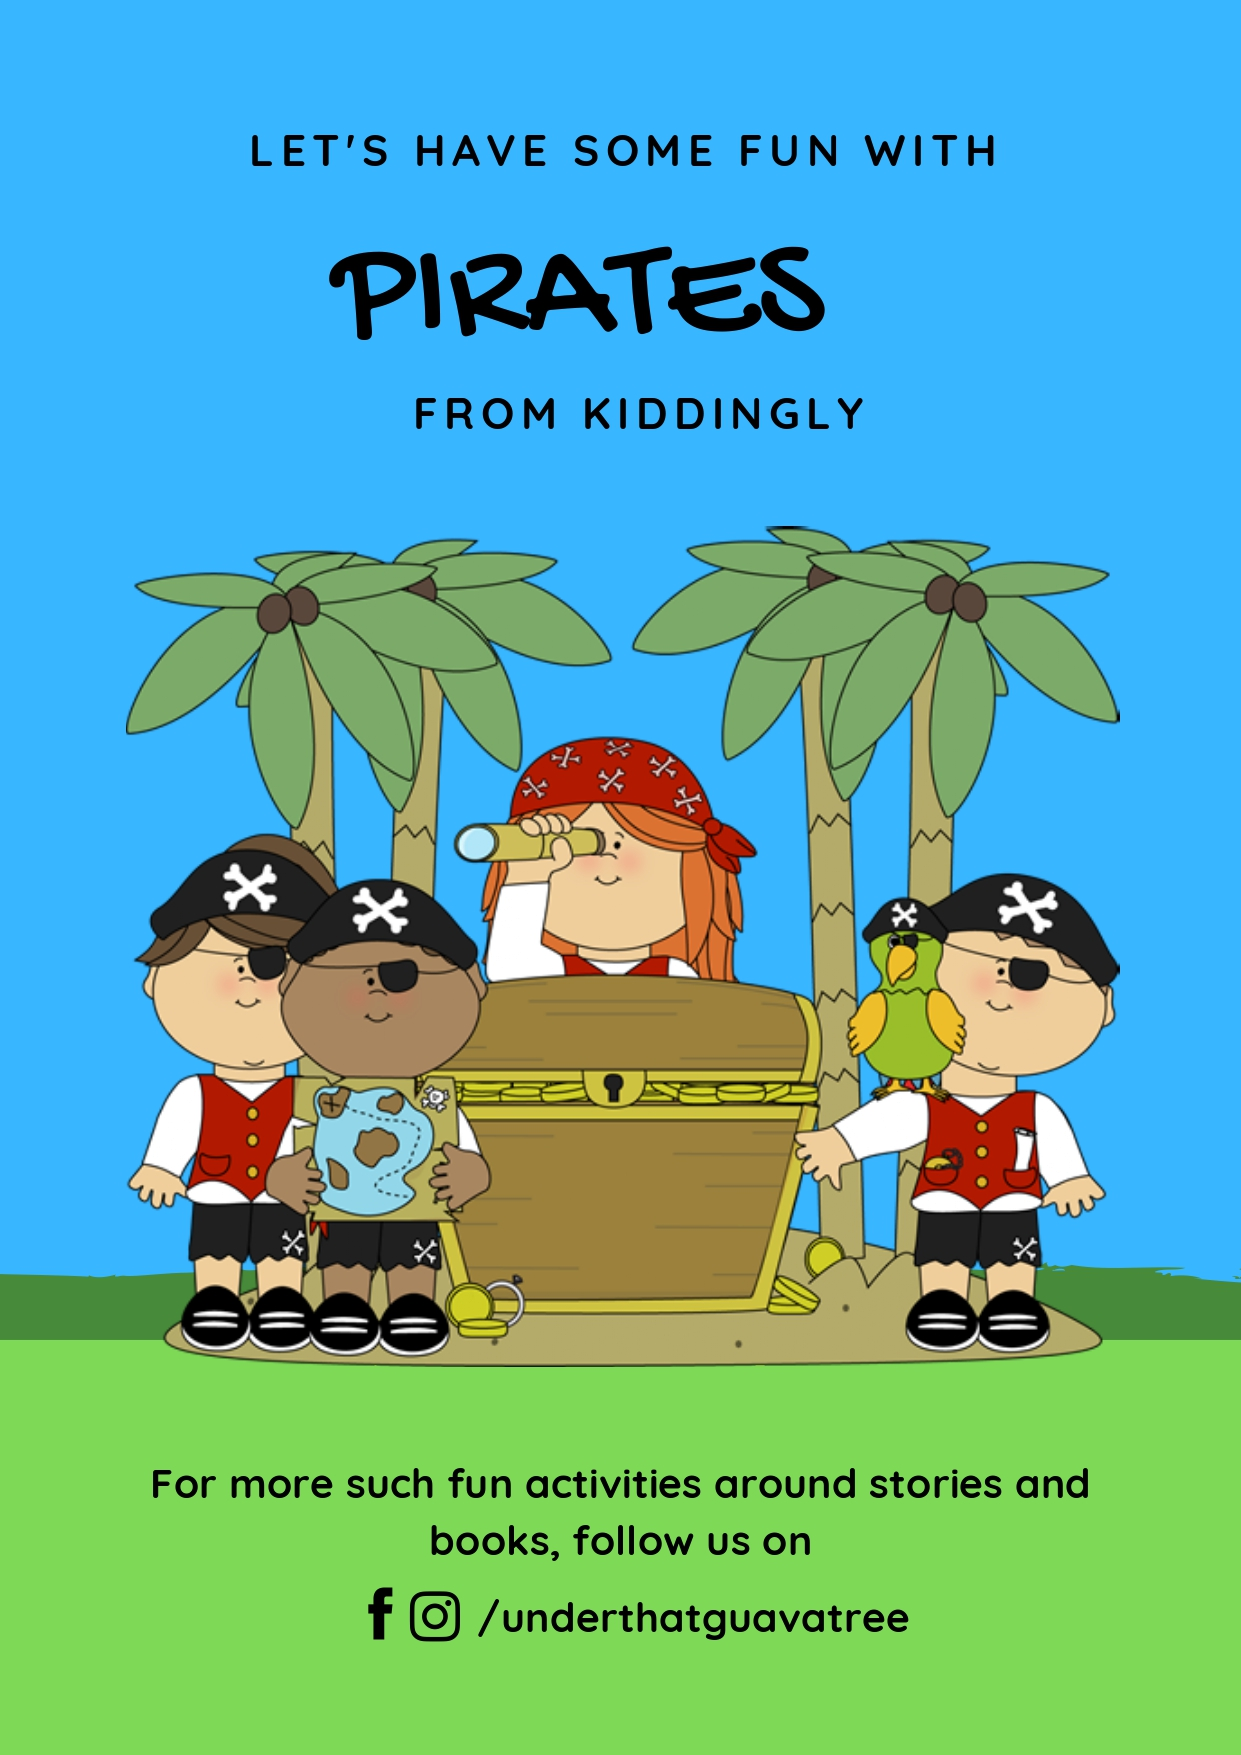 Fun With Pirates - Kiddingly Magazine - Pirates By Kiddingly page 0001